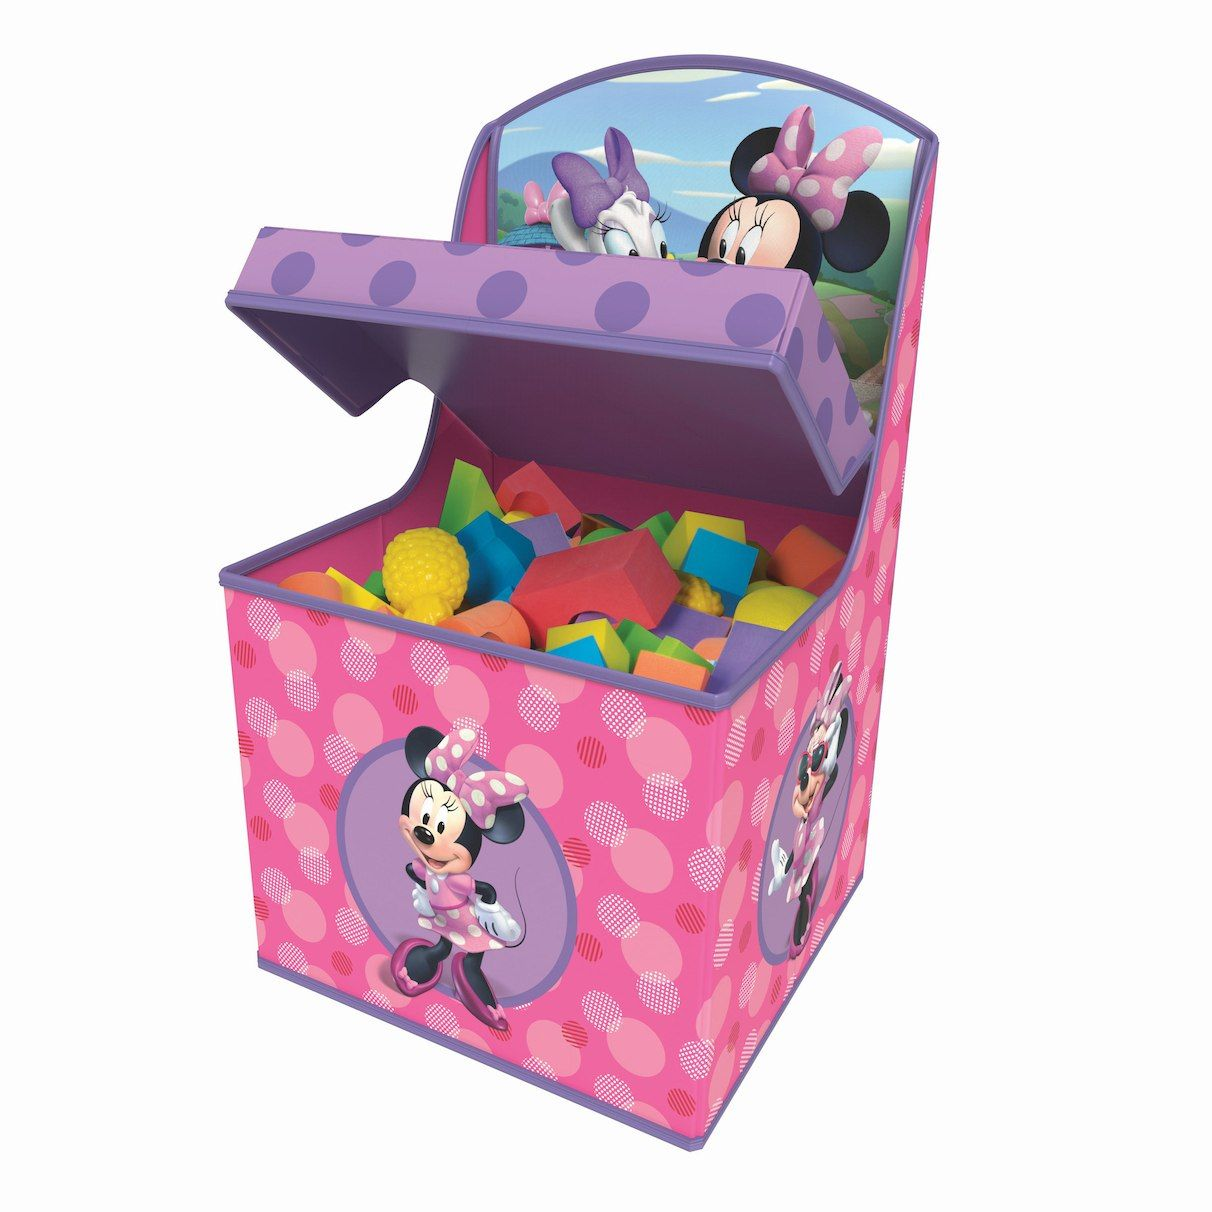 Disney Junior Minnie Mouse Tidy Town Jumbo Chair Storage